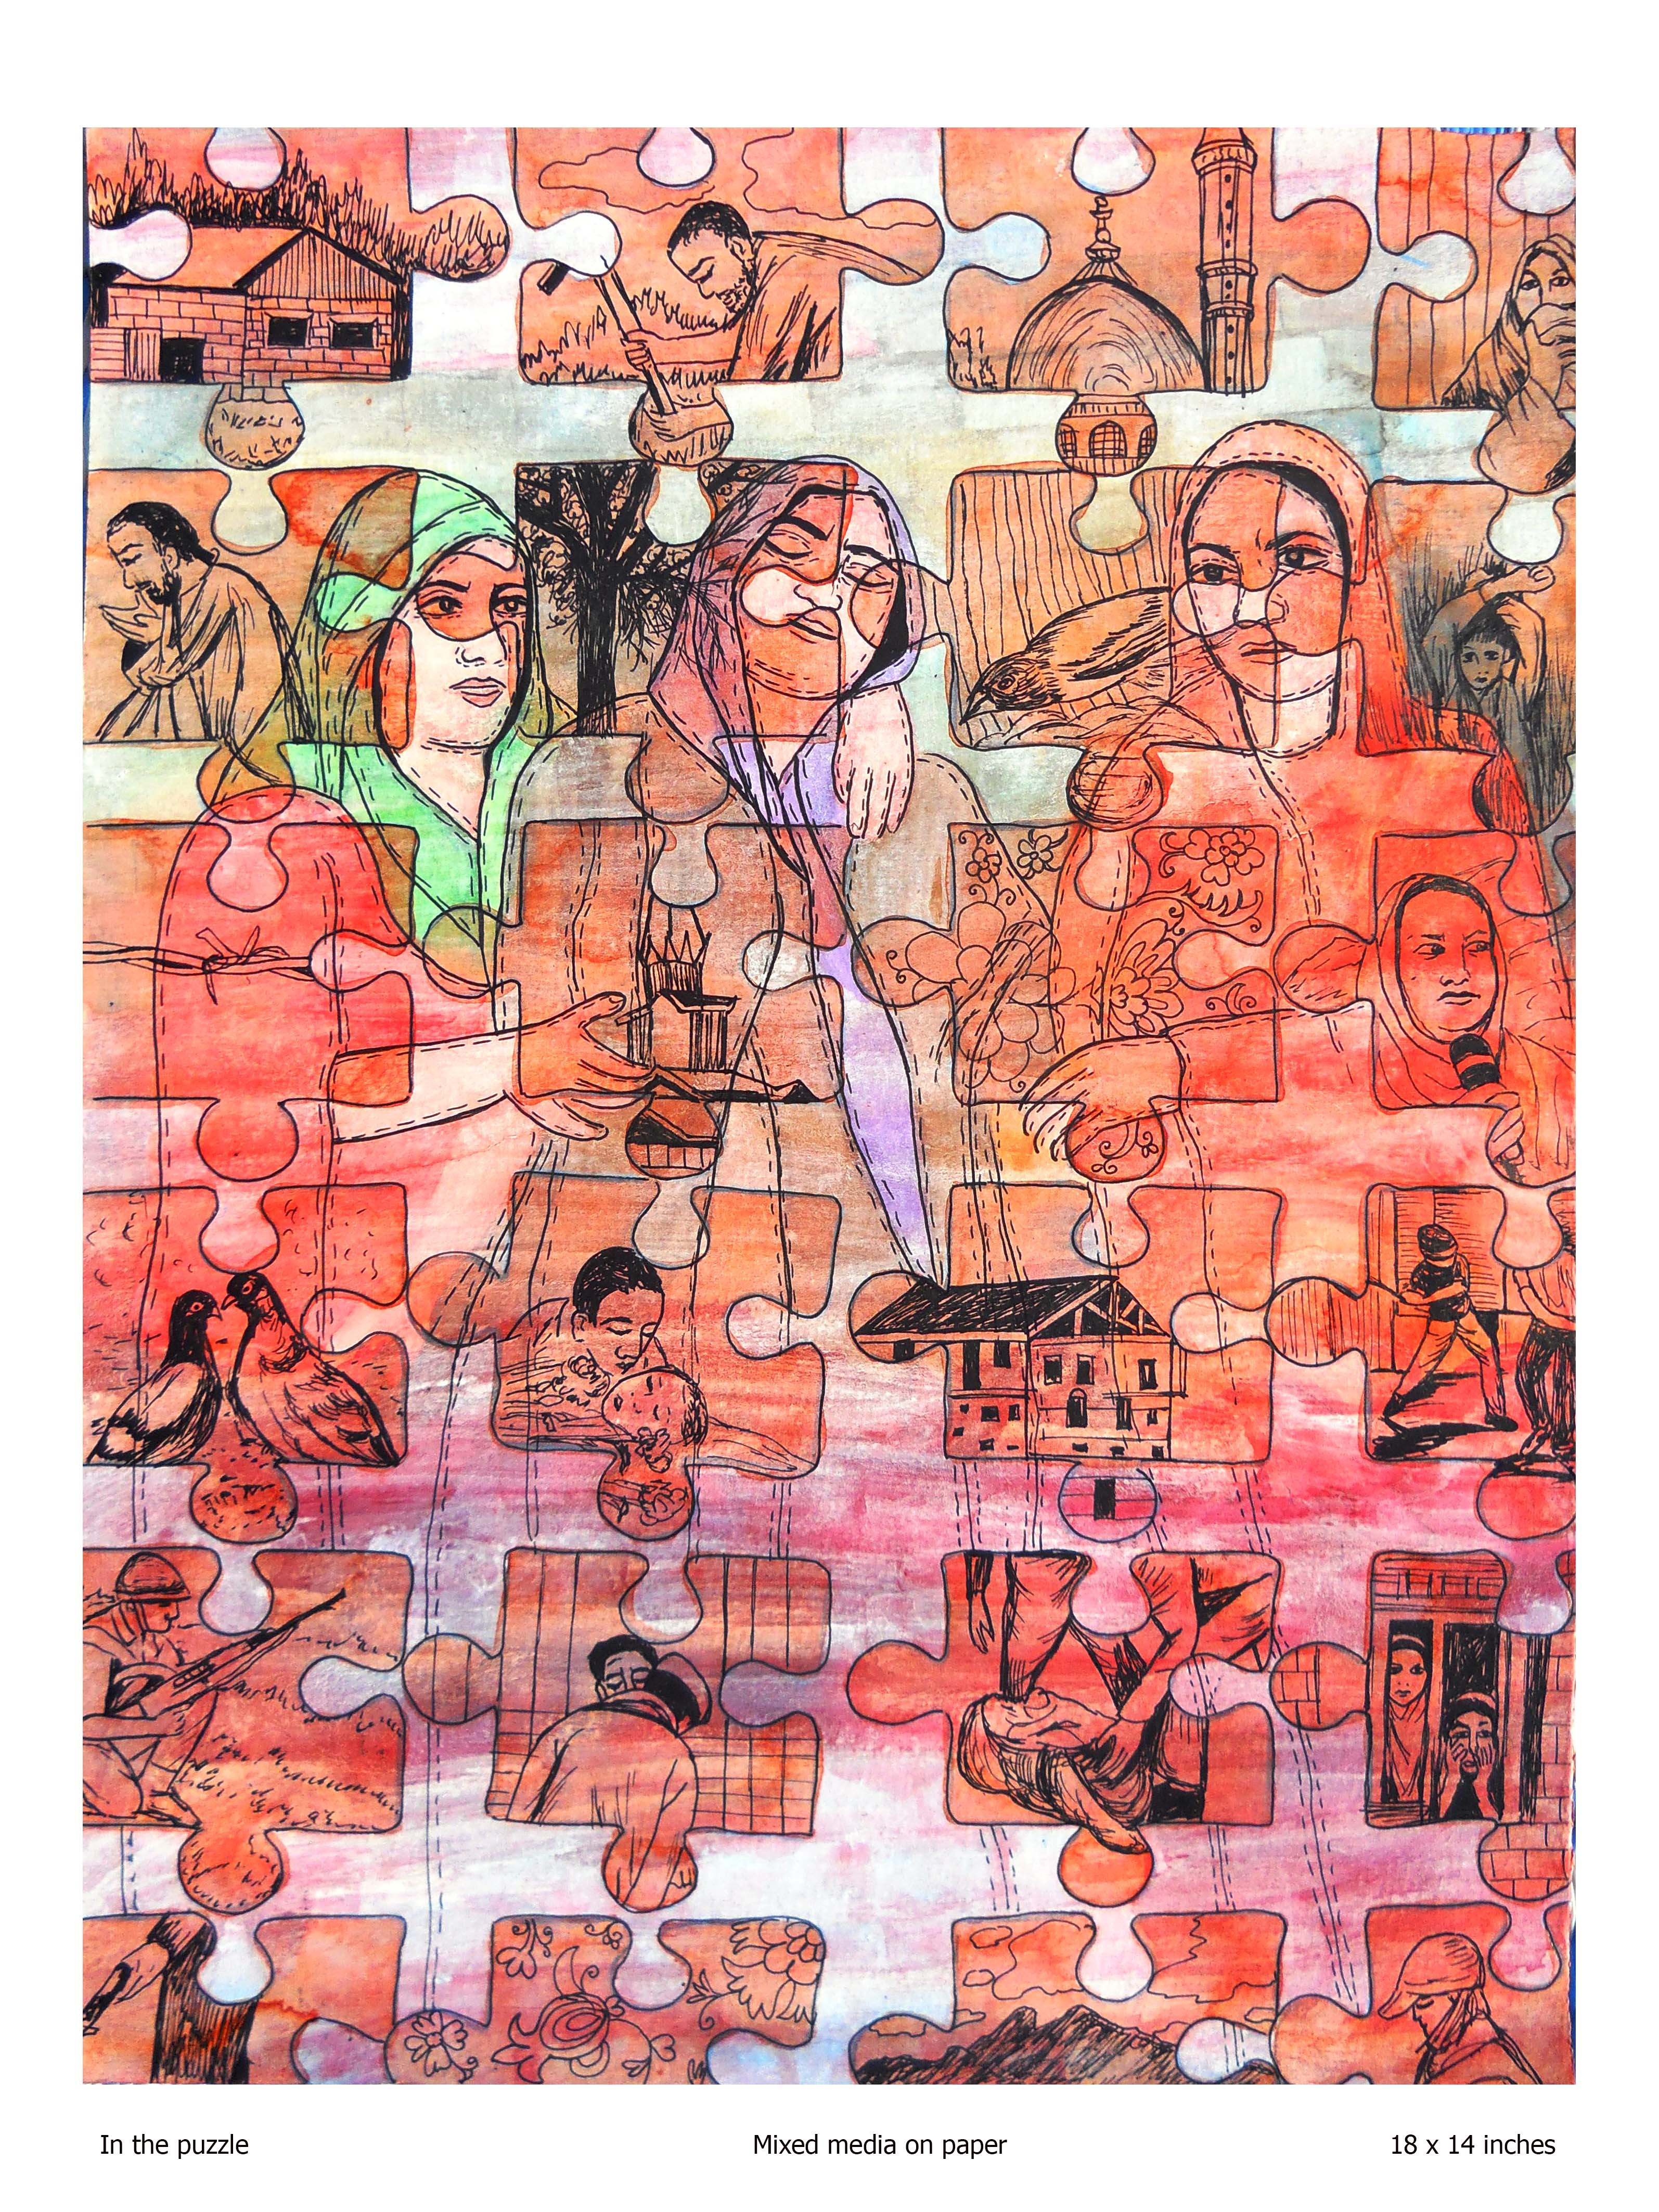 In the puzzle, Mixed media on paper, Rollie Mukherjee